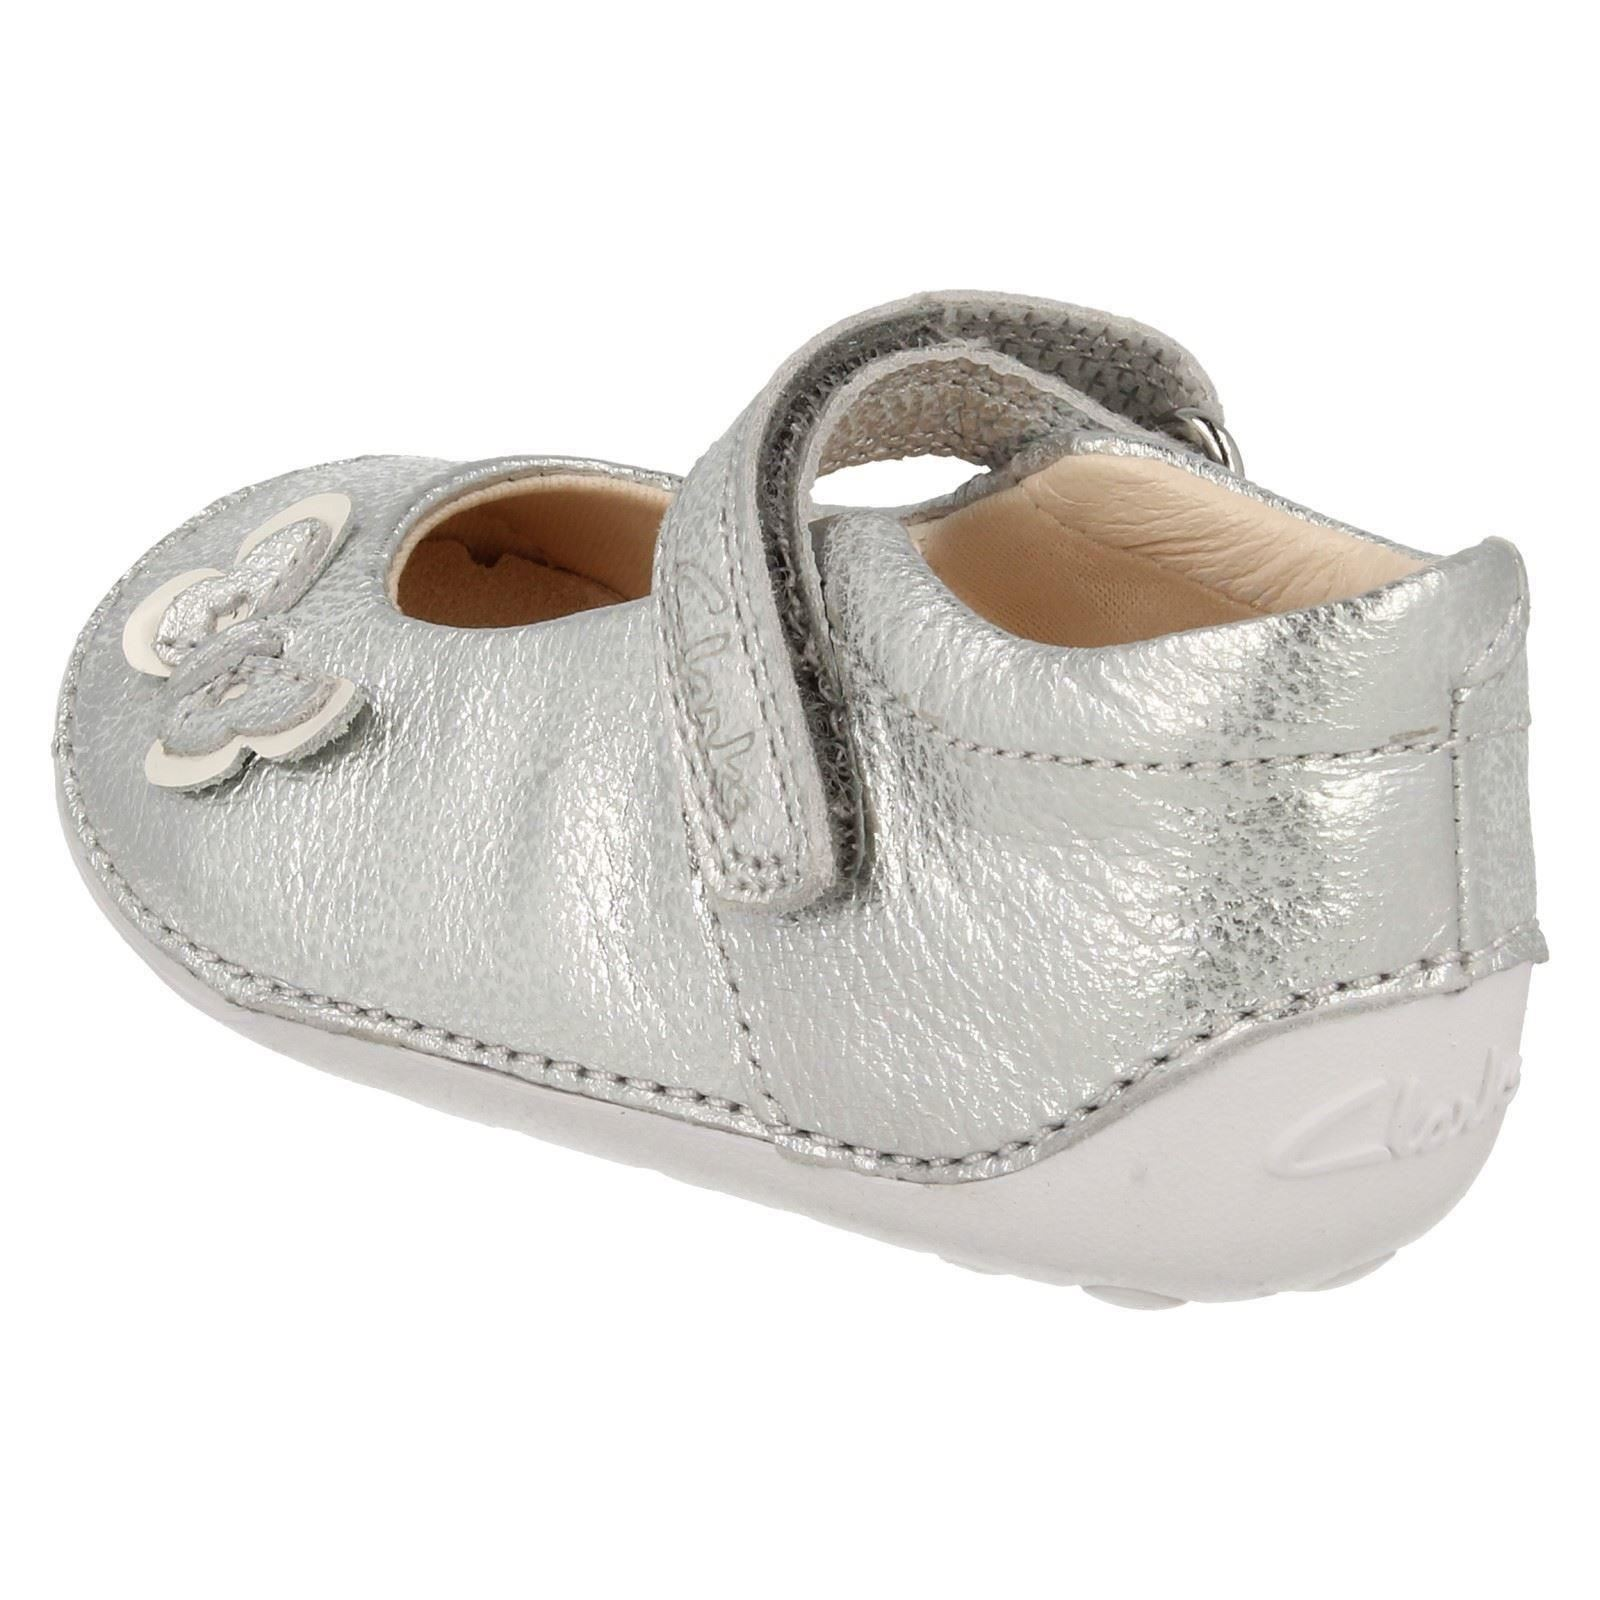 Baby Toddler Girls Clarks Leather Pre Walker First Cruiser Shoes